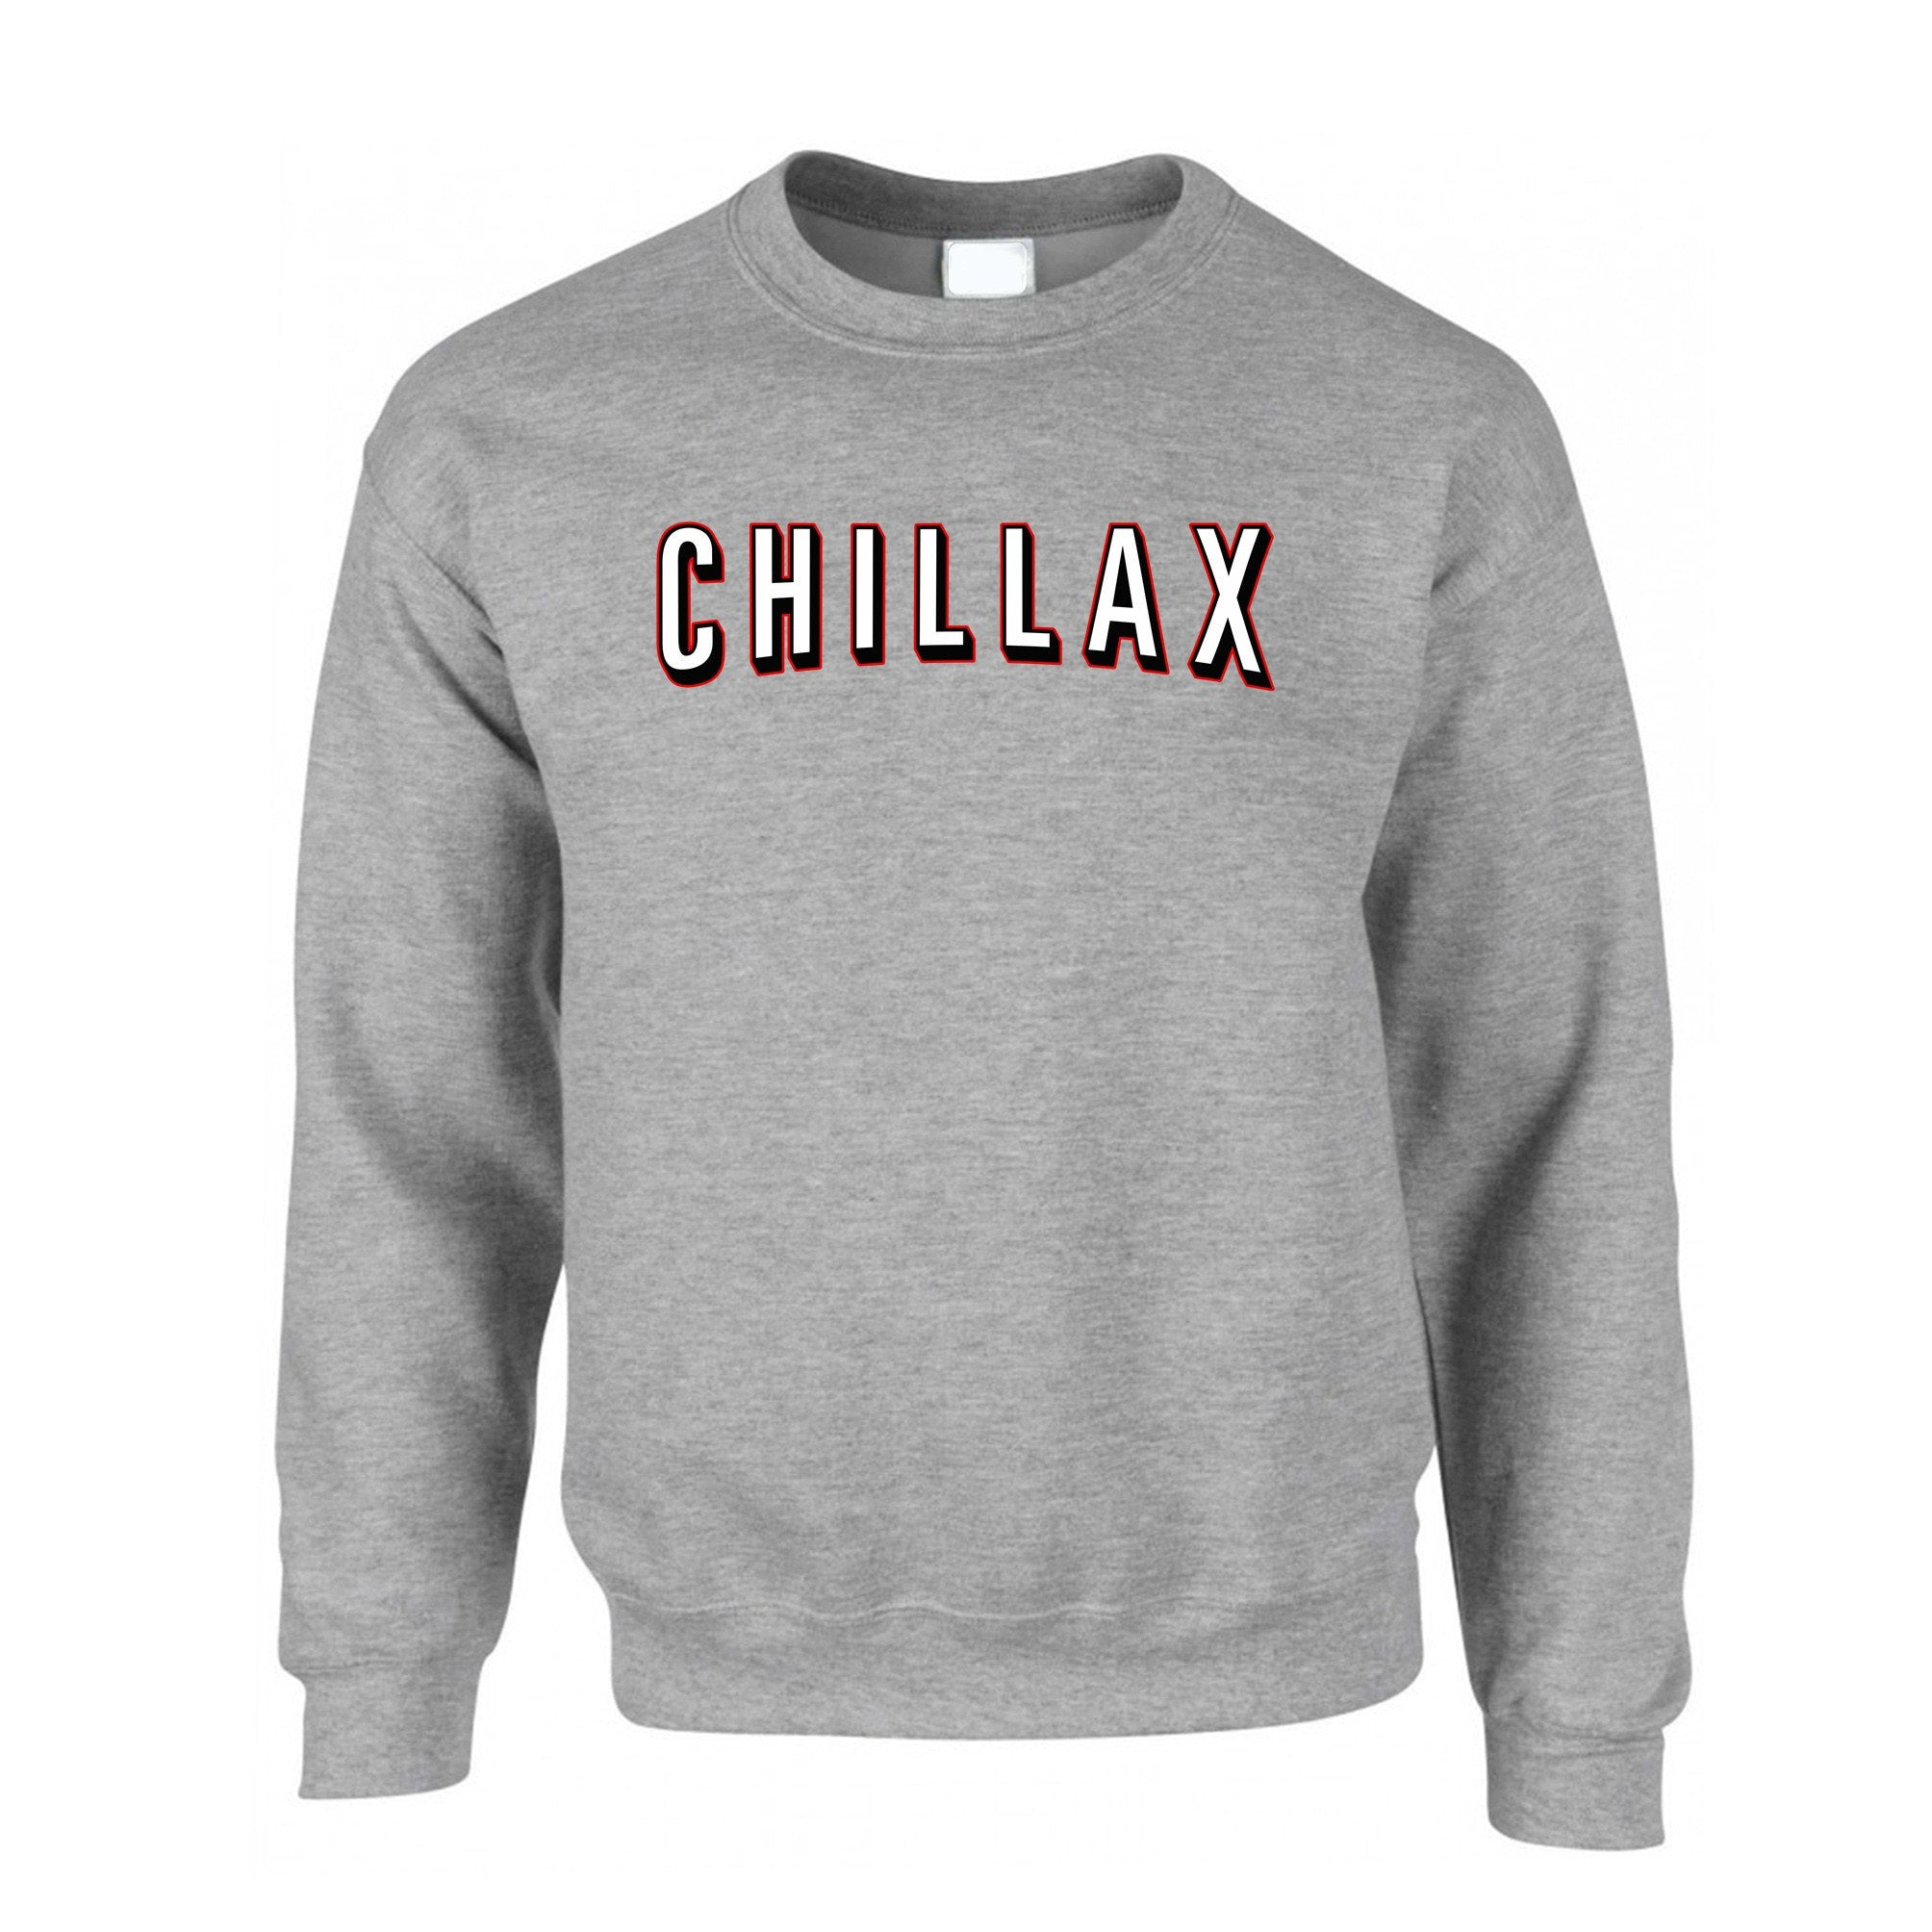 TV And Chill Jumper Chillax Stylised Text Slogan Sweatshirt Sweater